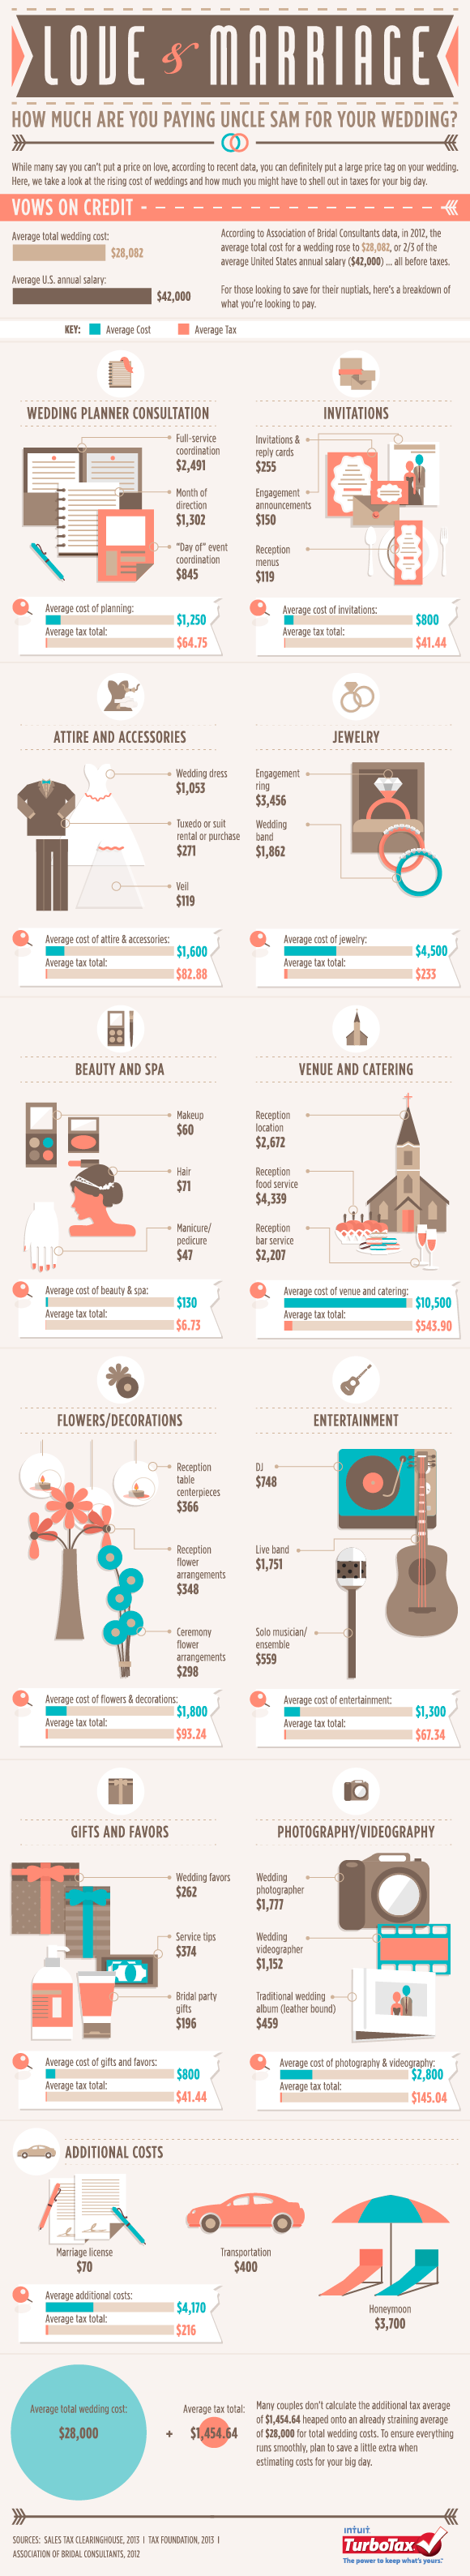 Love And Marriage How Much Are You Paying Uncle Sam For Your Wedding Infographic The Turbotax Blog